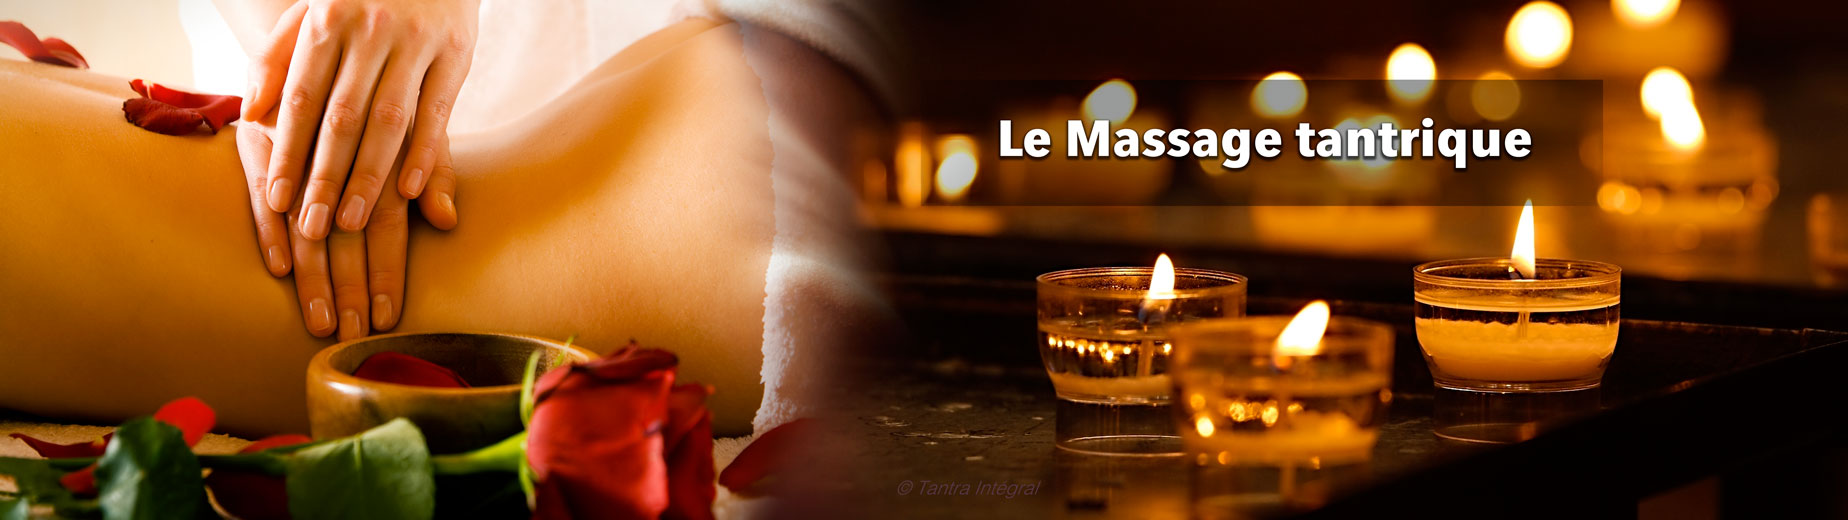 Pano-Massages-tantrique-diversL